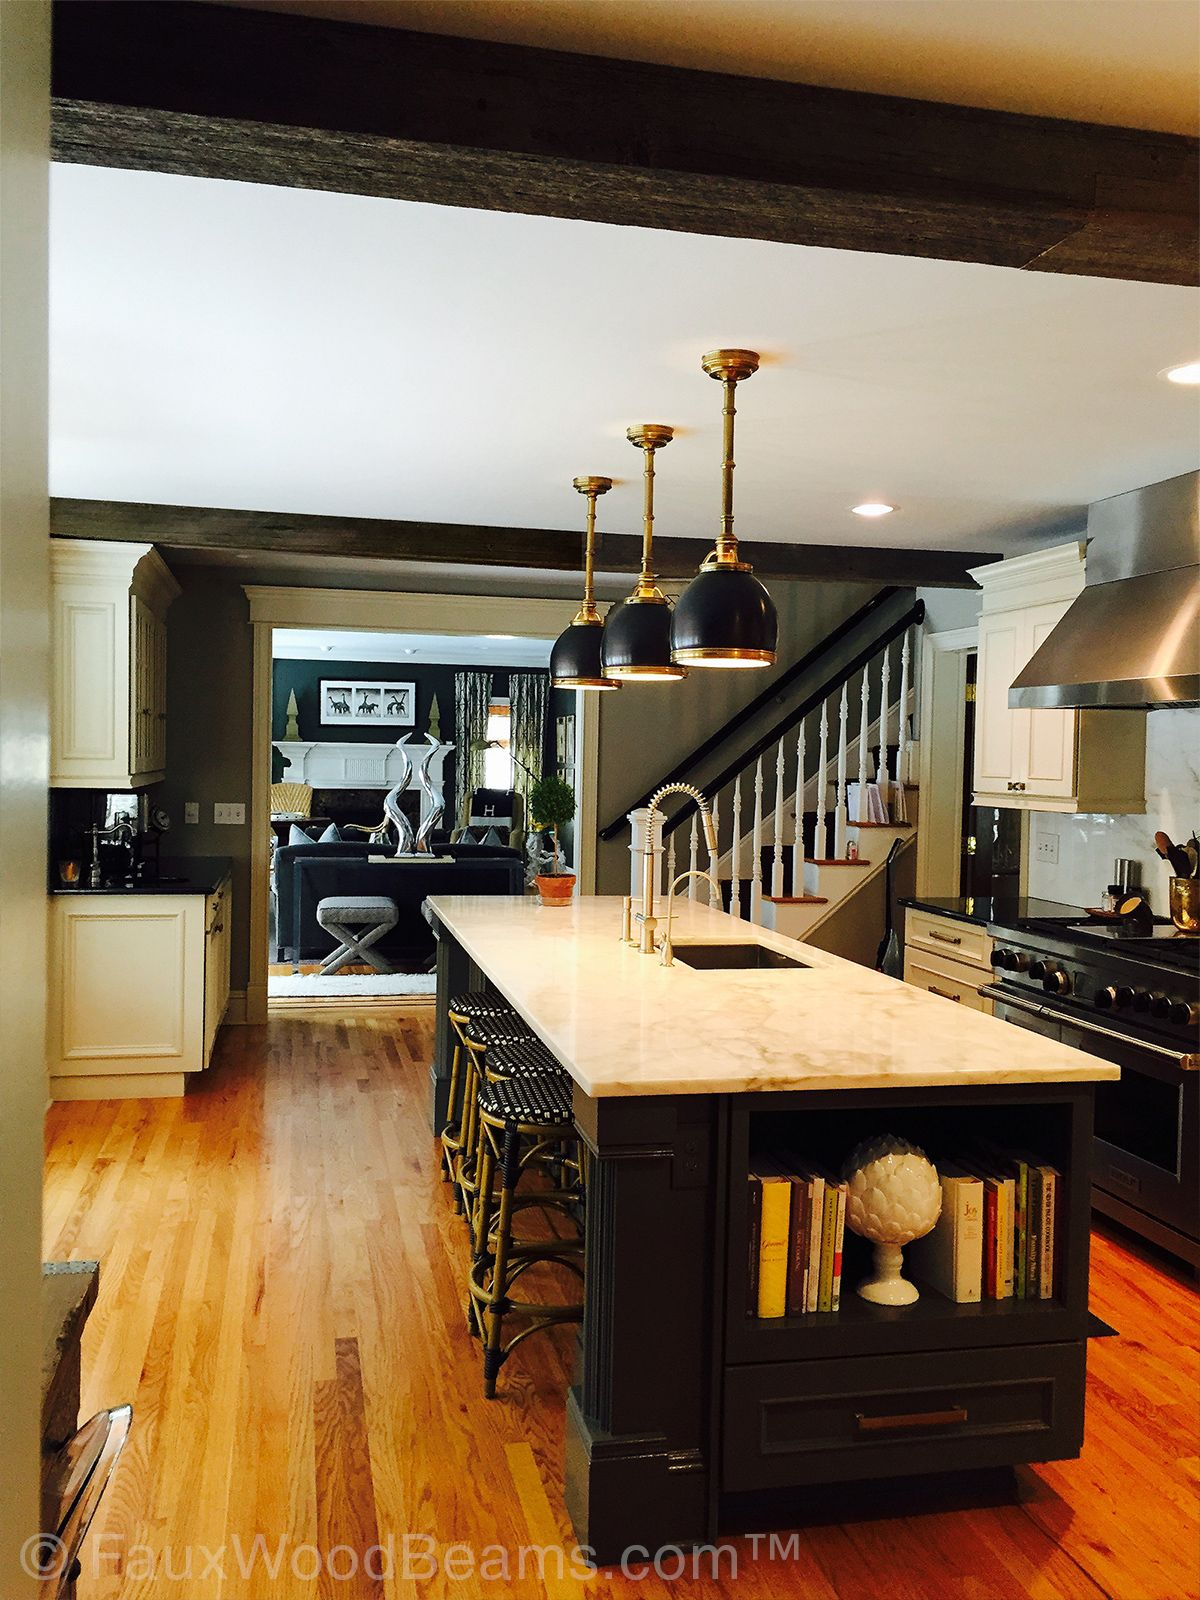 Kitchen And Living Room Design Ideas: Photos, Ideas With Real Wood Box Beams